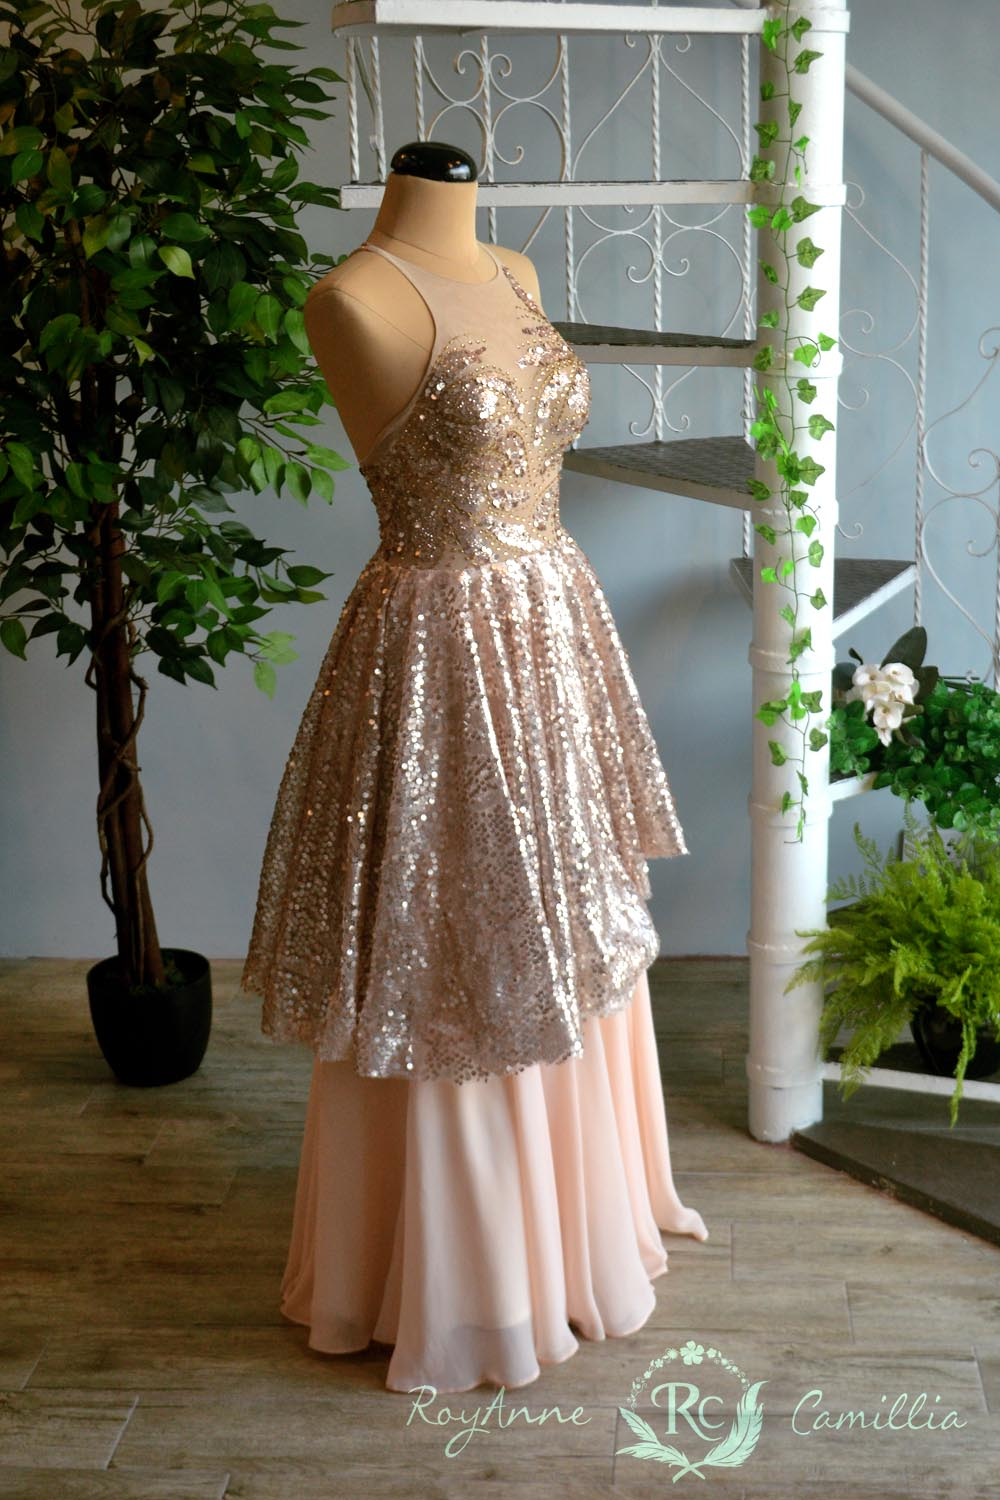 Luxury Formal Gown Rentals Ornament - Images for wedding gown ideas ...